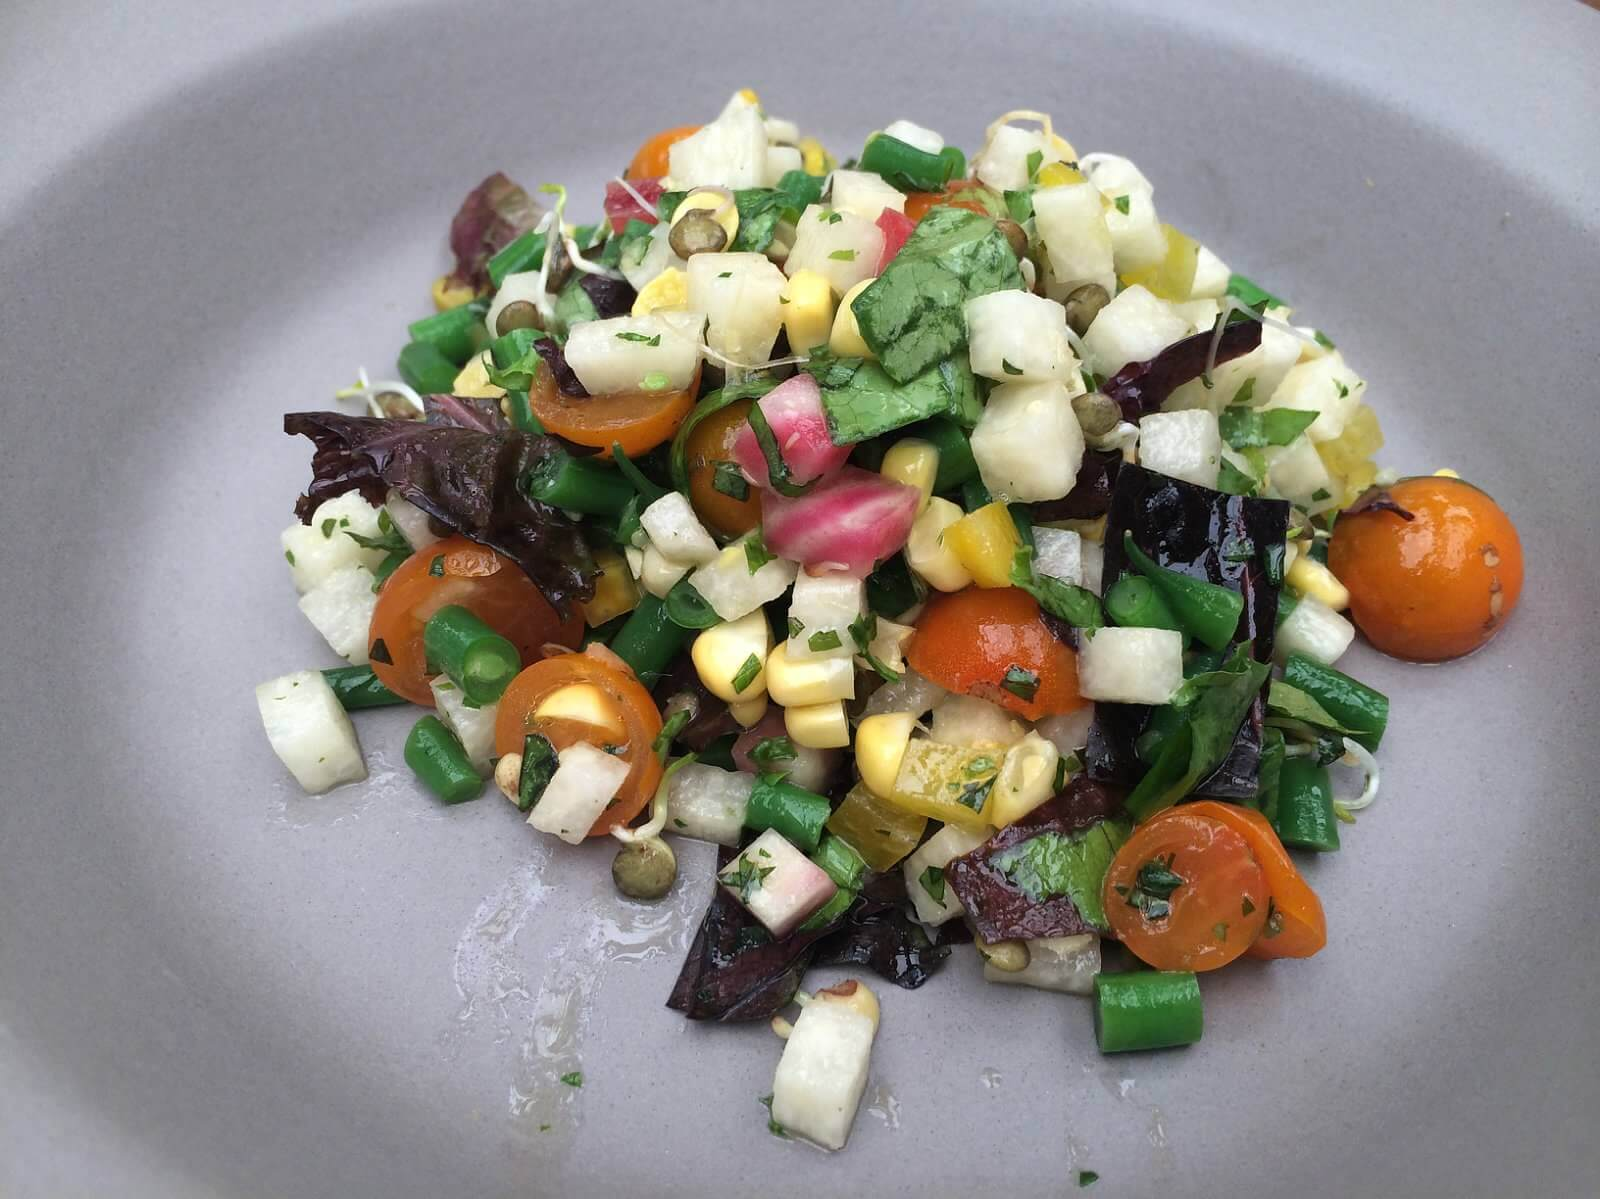 Starter--Vegetable Salad. sprouted lentils, beets, corn, haricots verts, jicama, sungold tomatoes, red wine herb vinaigrette